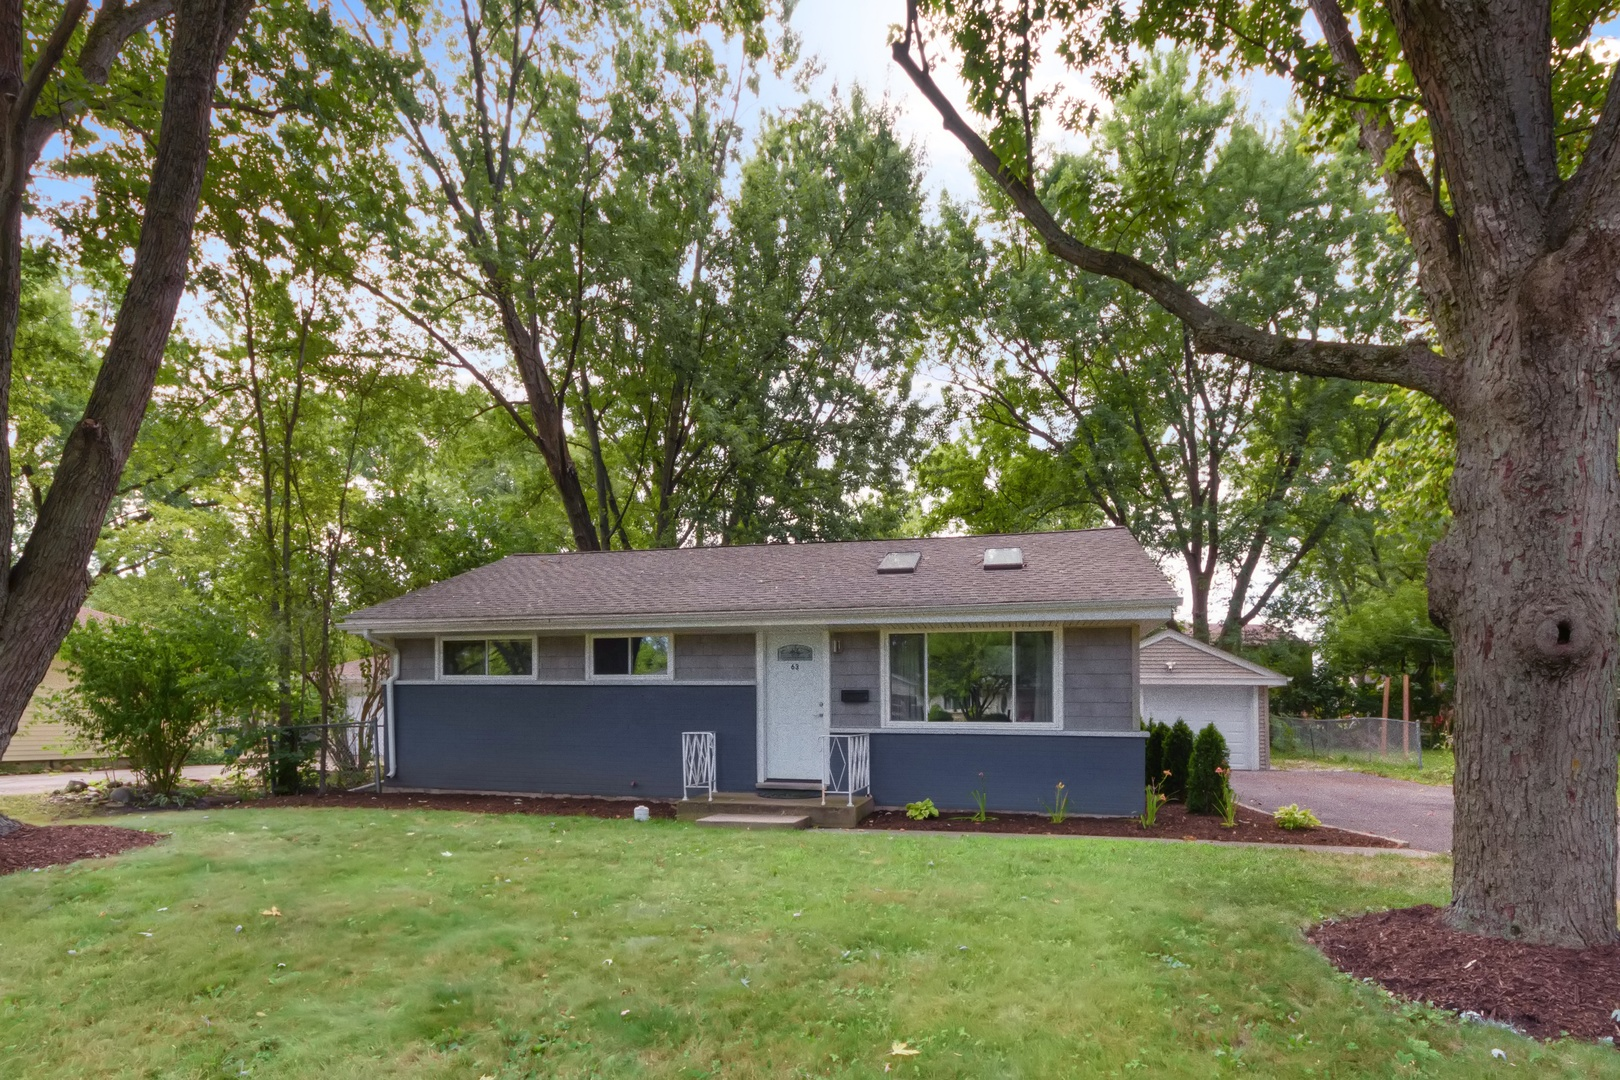 63 Golfview Road, Lake Zurich, Illinois 60047